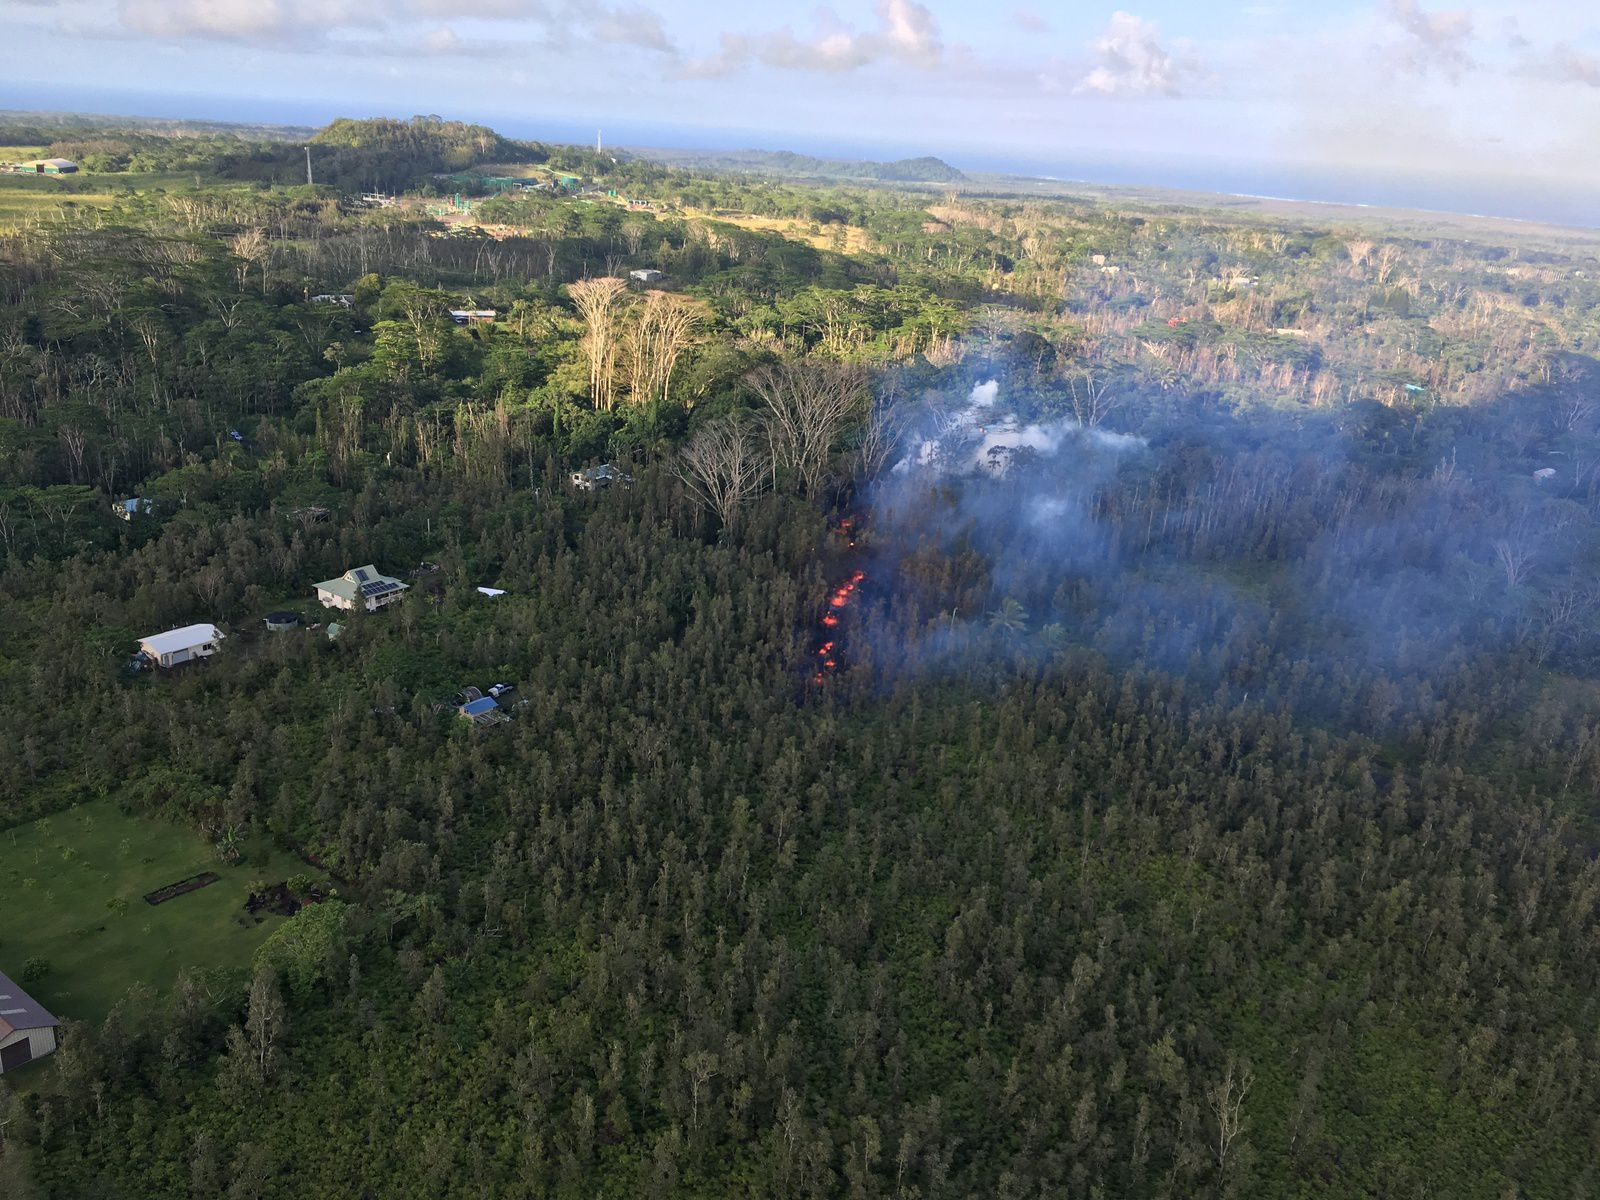 Hawaii - An eruption blew this May 3 in Leilani Estates Subdivision in the Lower East Rift Zone of Kīlauea - Photo HVO - USGS